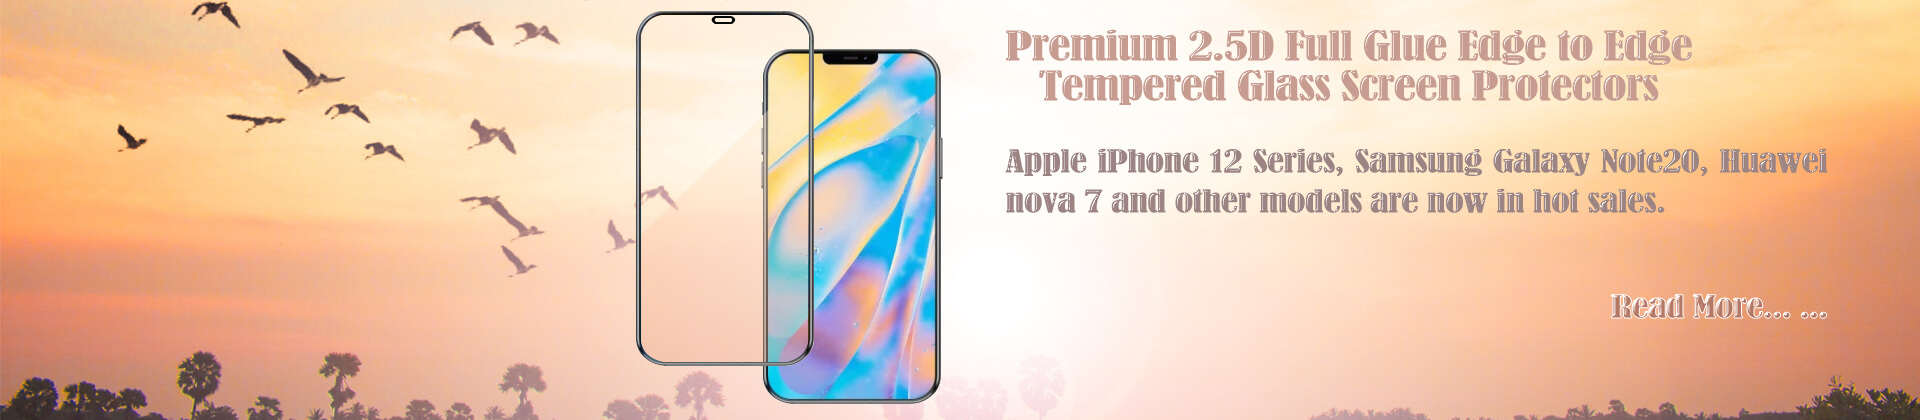 wholesale oem 2.5D full glue edge to edge tempered glass screen protectors for iPhone 12 series, Samsung Galaxy Note20, Huawei nova 7 and other models from Dongguan Medas